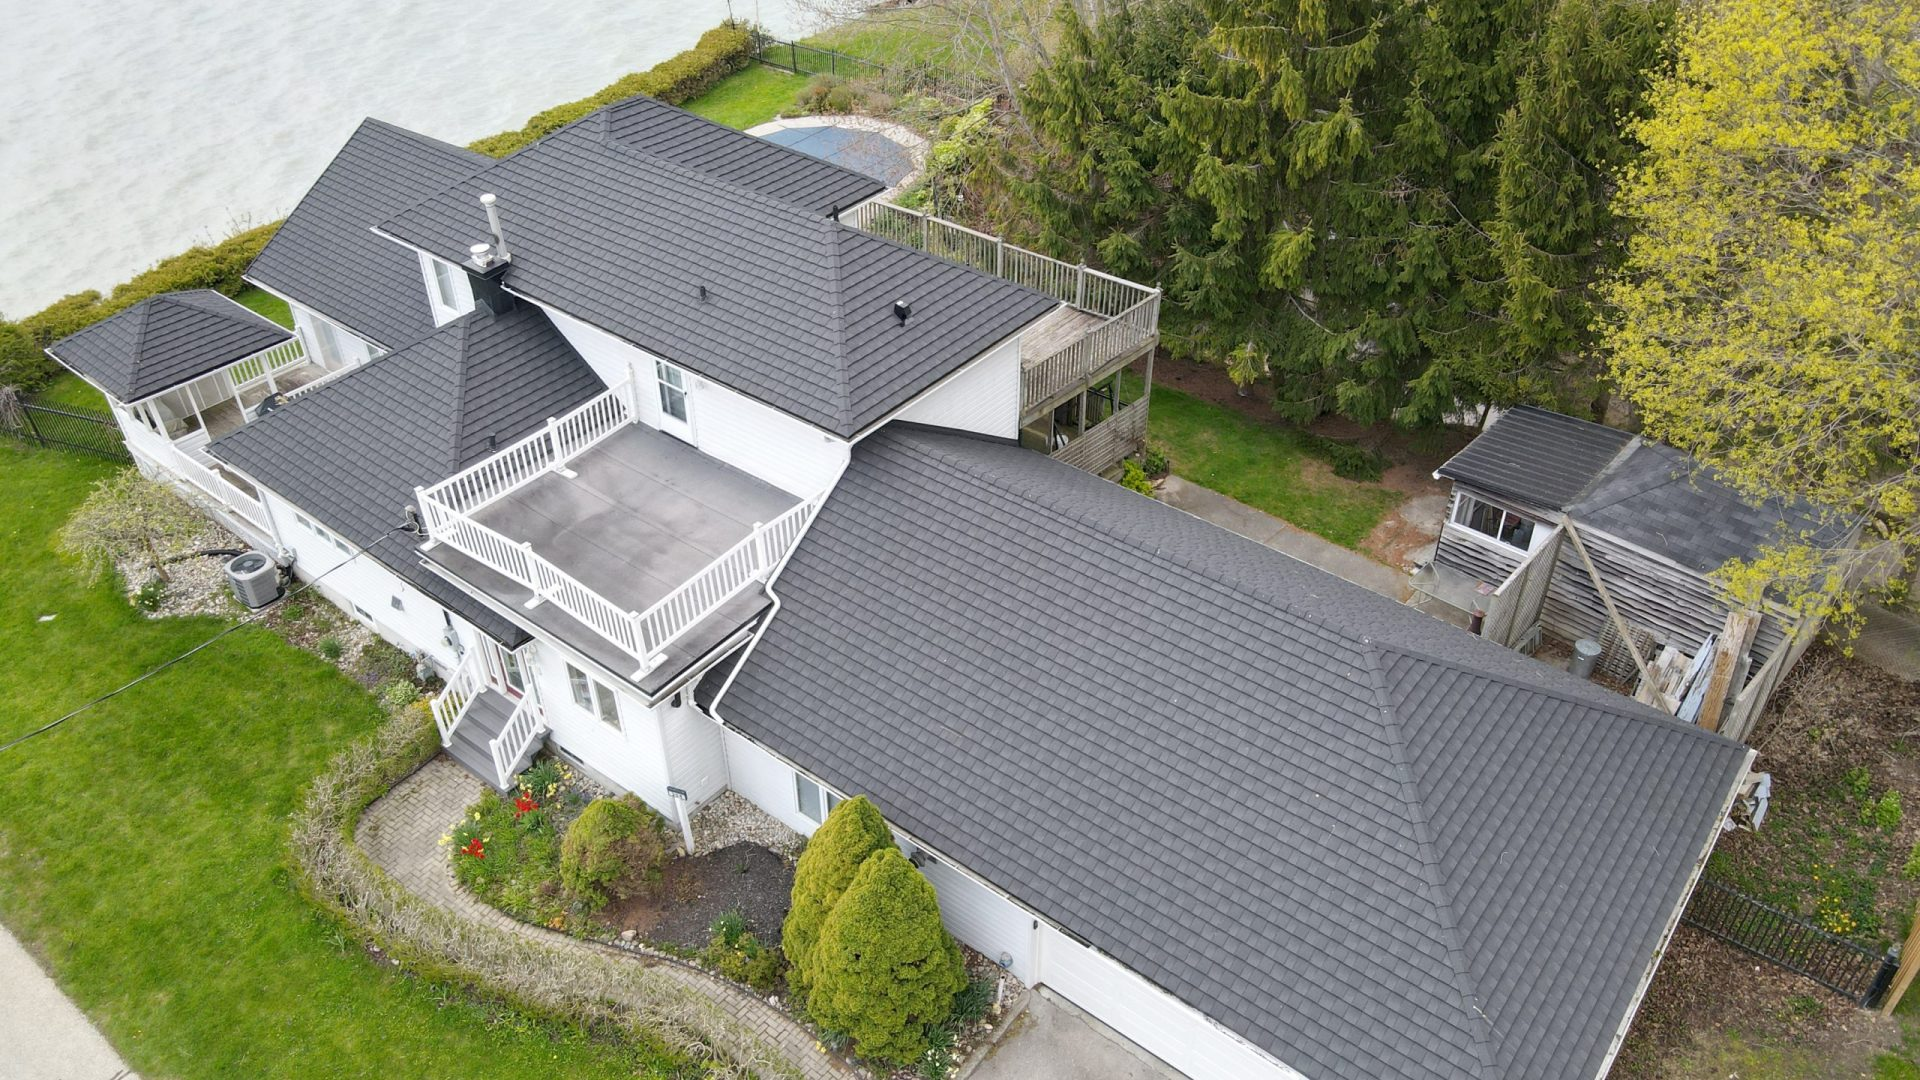 Aerial view of grey metal shingles from metal roof outlet on a white home with trees and shrubs surrounding